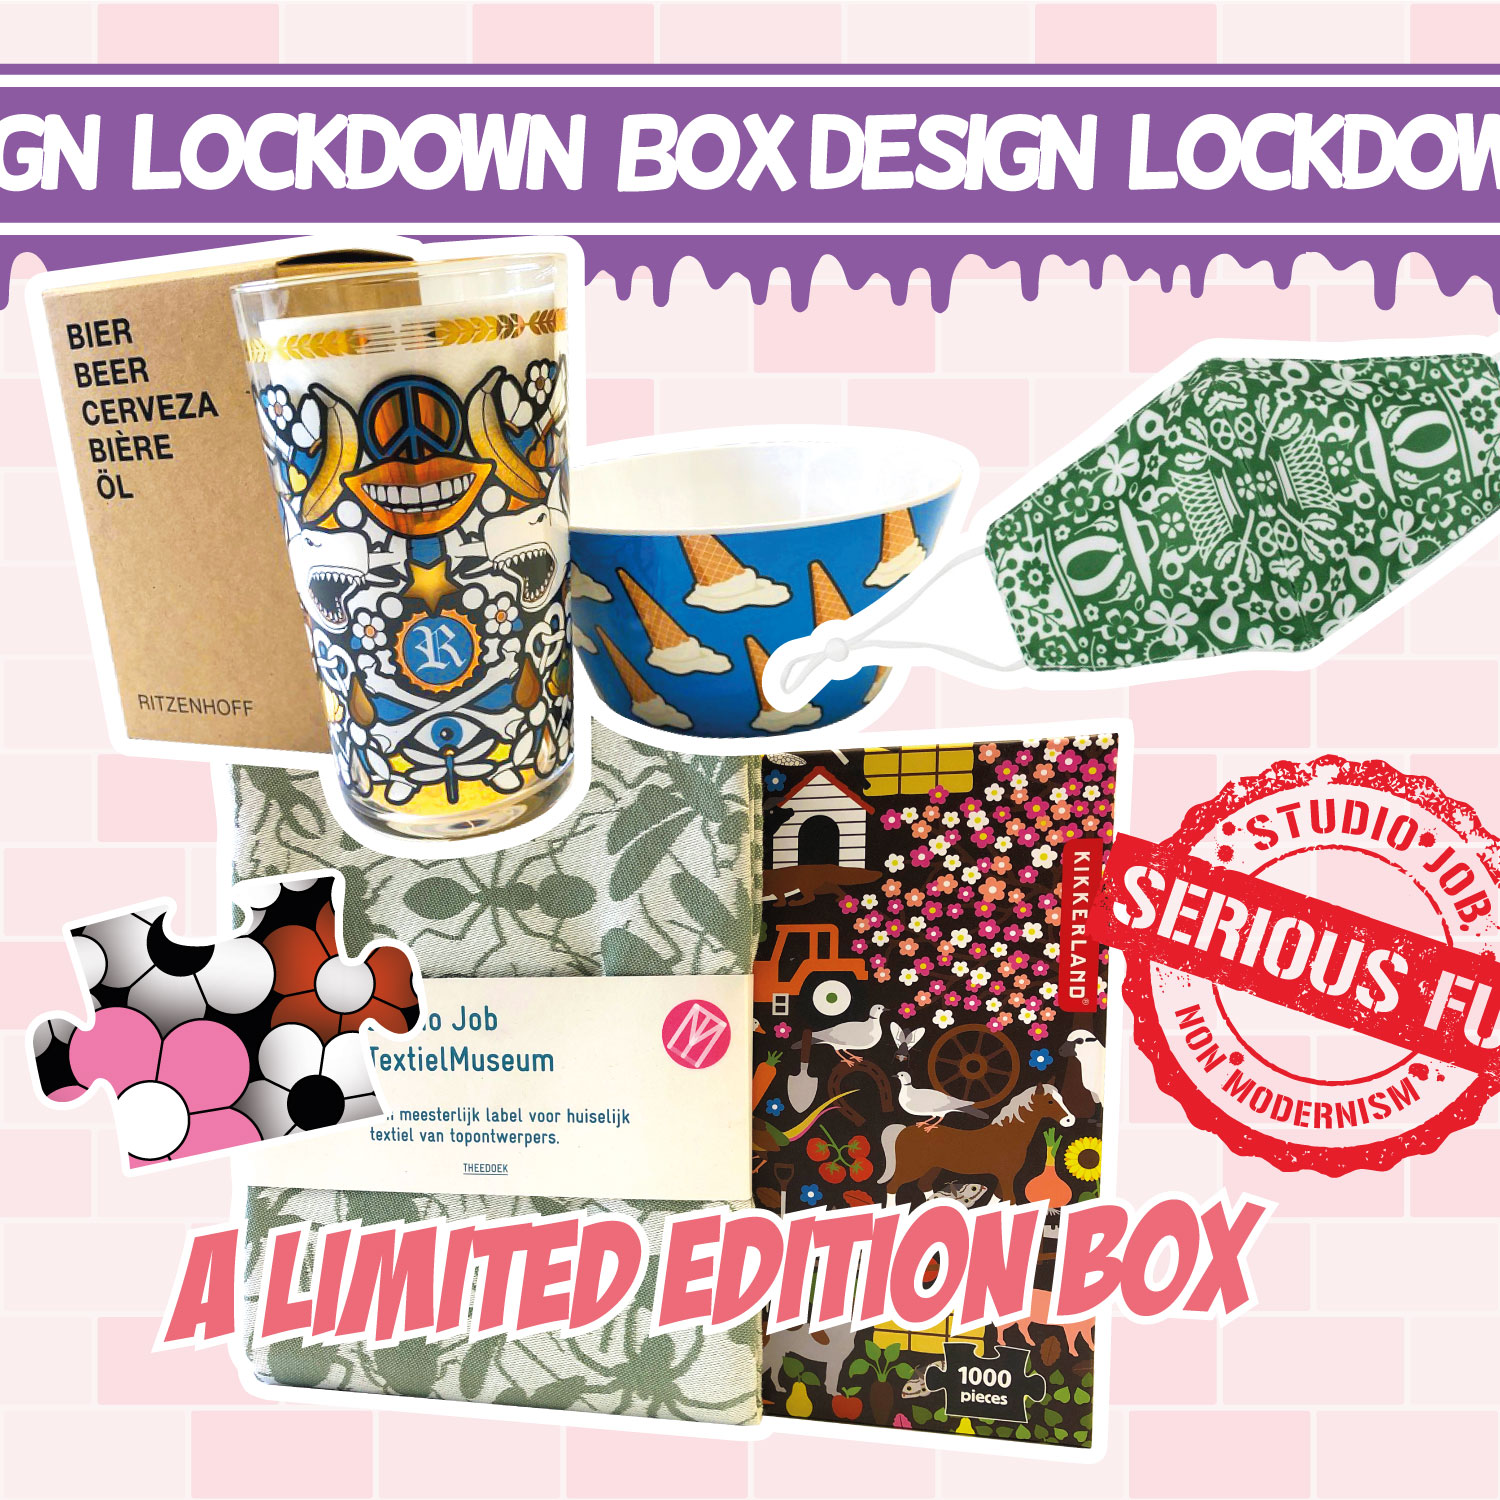 design-lockdown-box-1